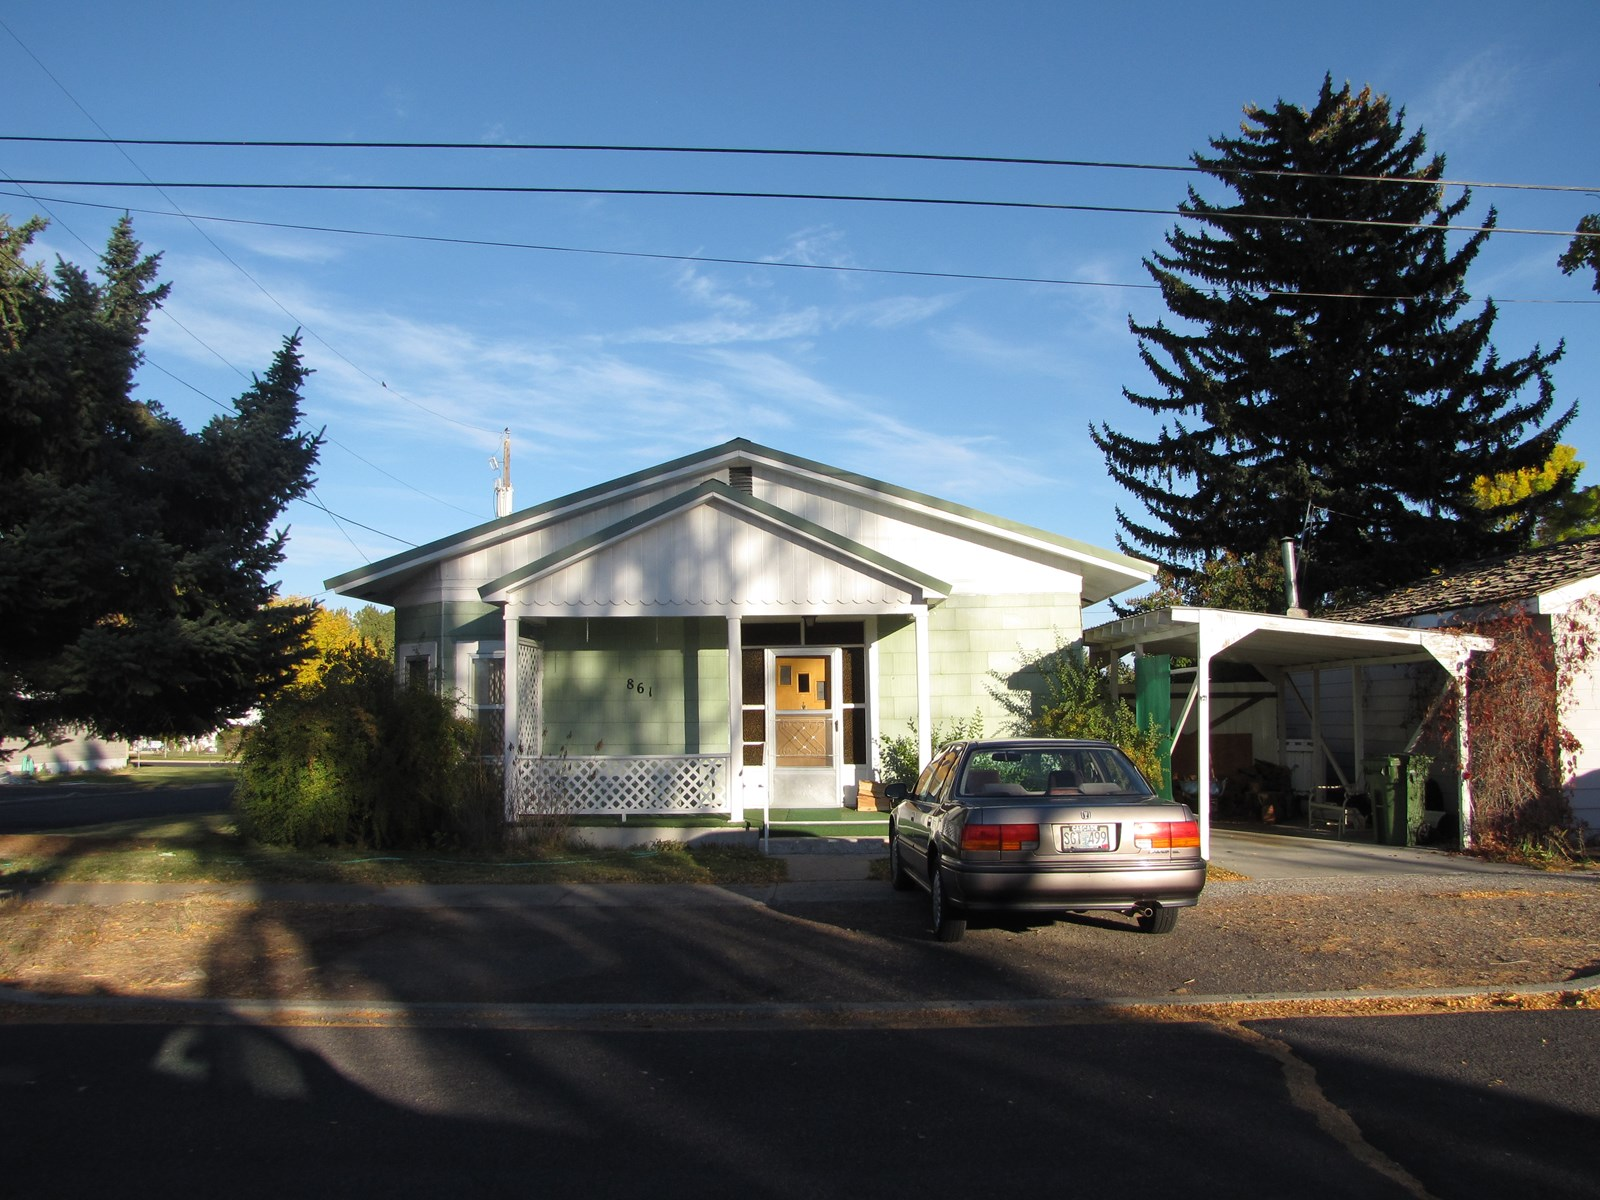 HOUSE LISTING IN BURNS OR